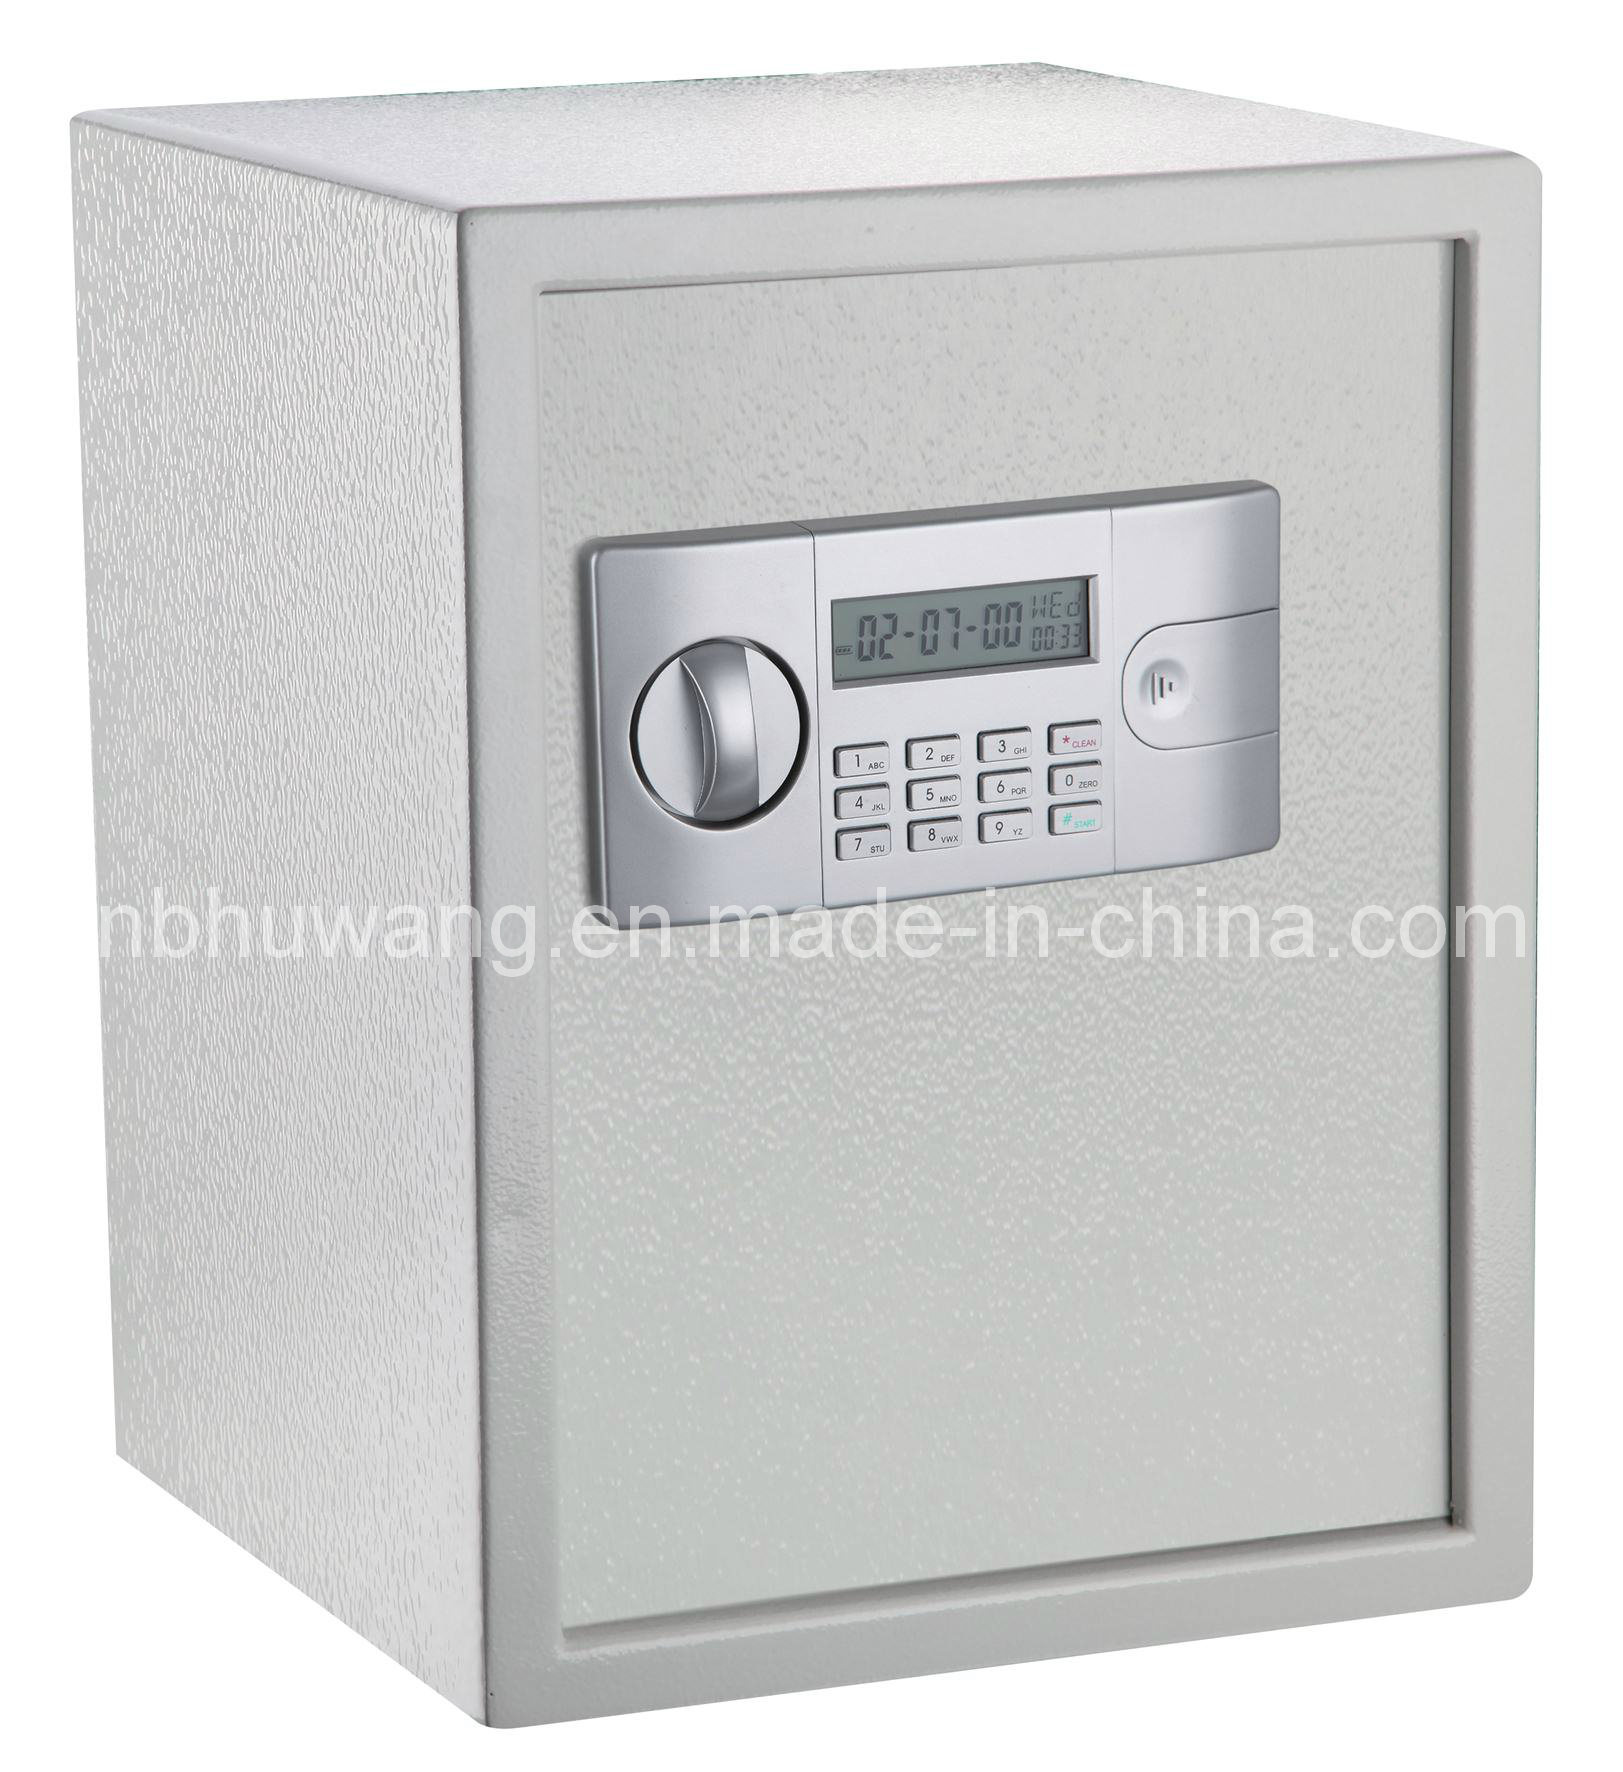 Electronic Safe E45ld for Home and Bussiness Use